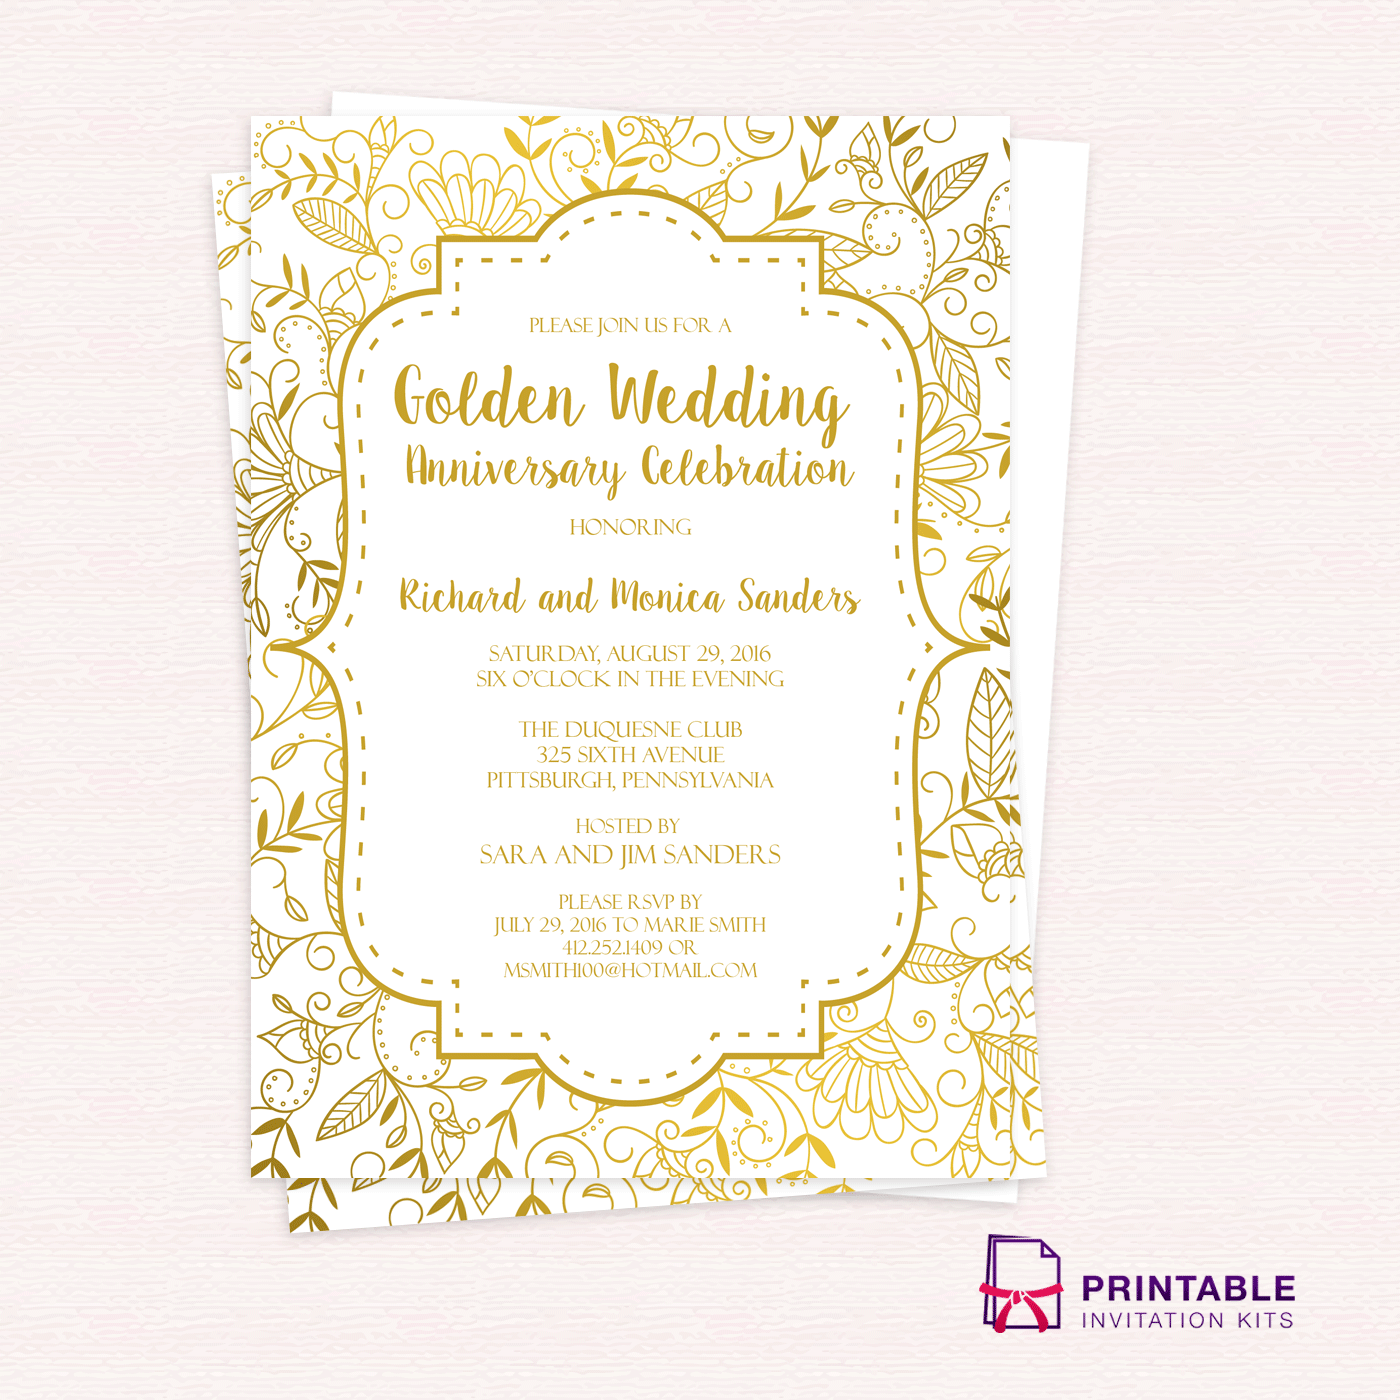 wedding anniversary invite template zaxa